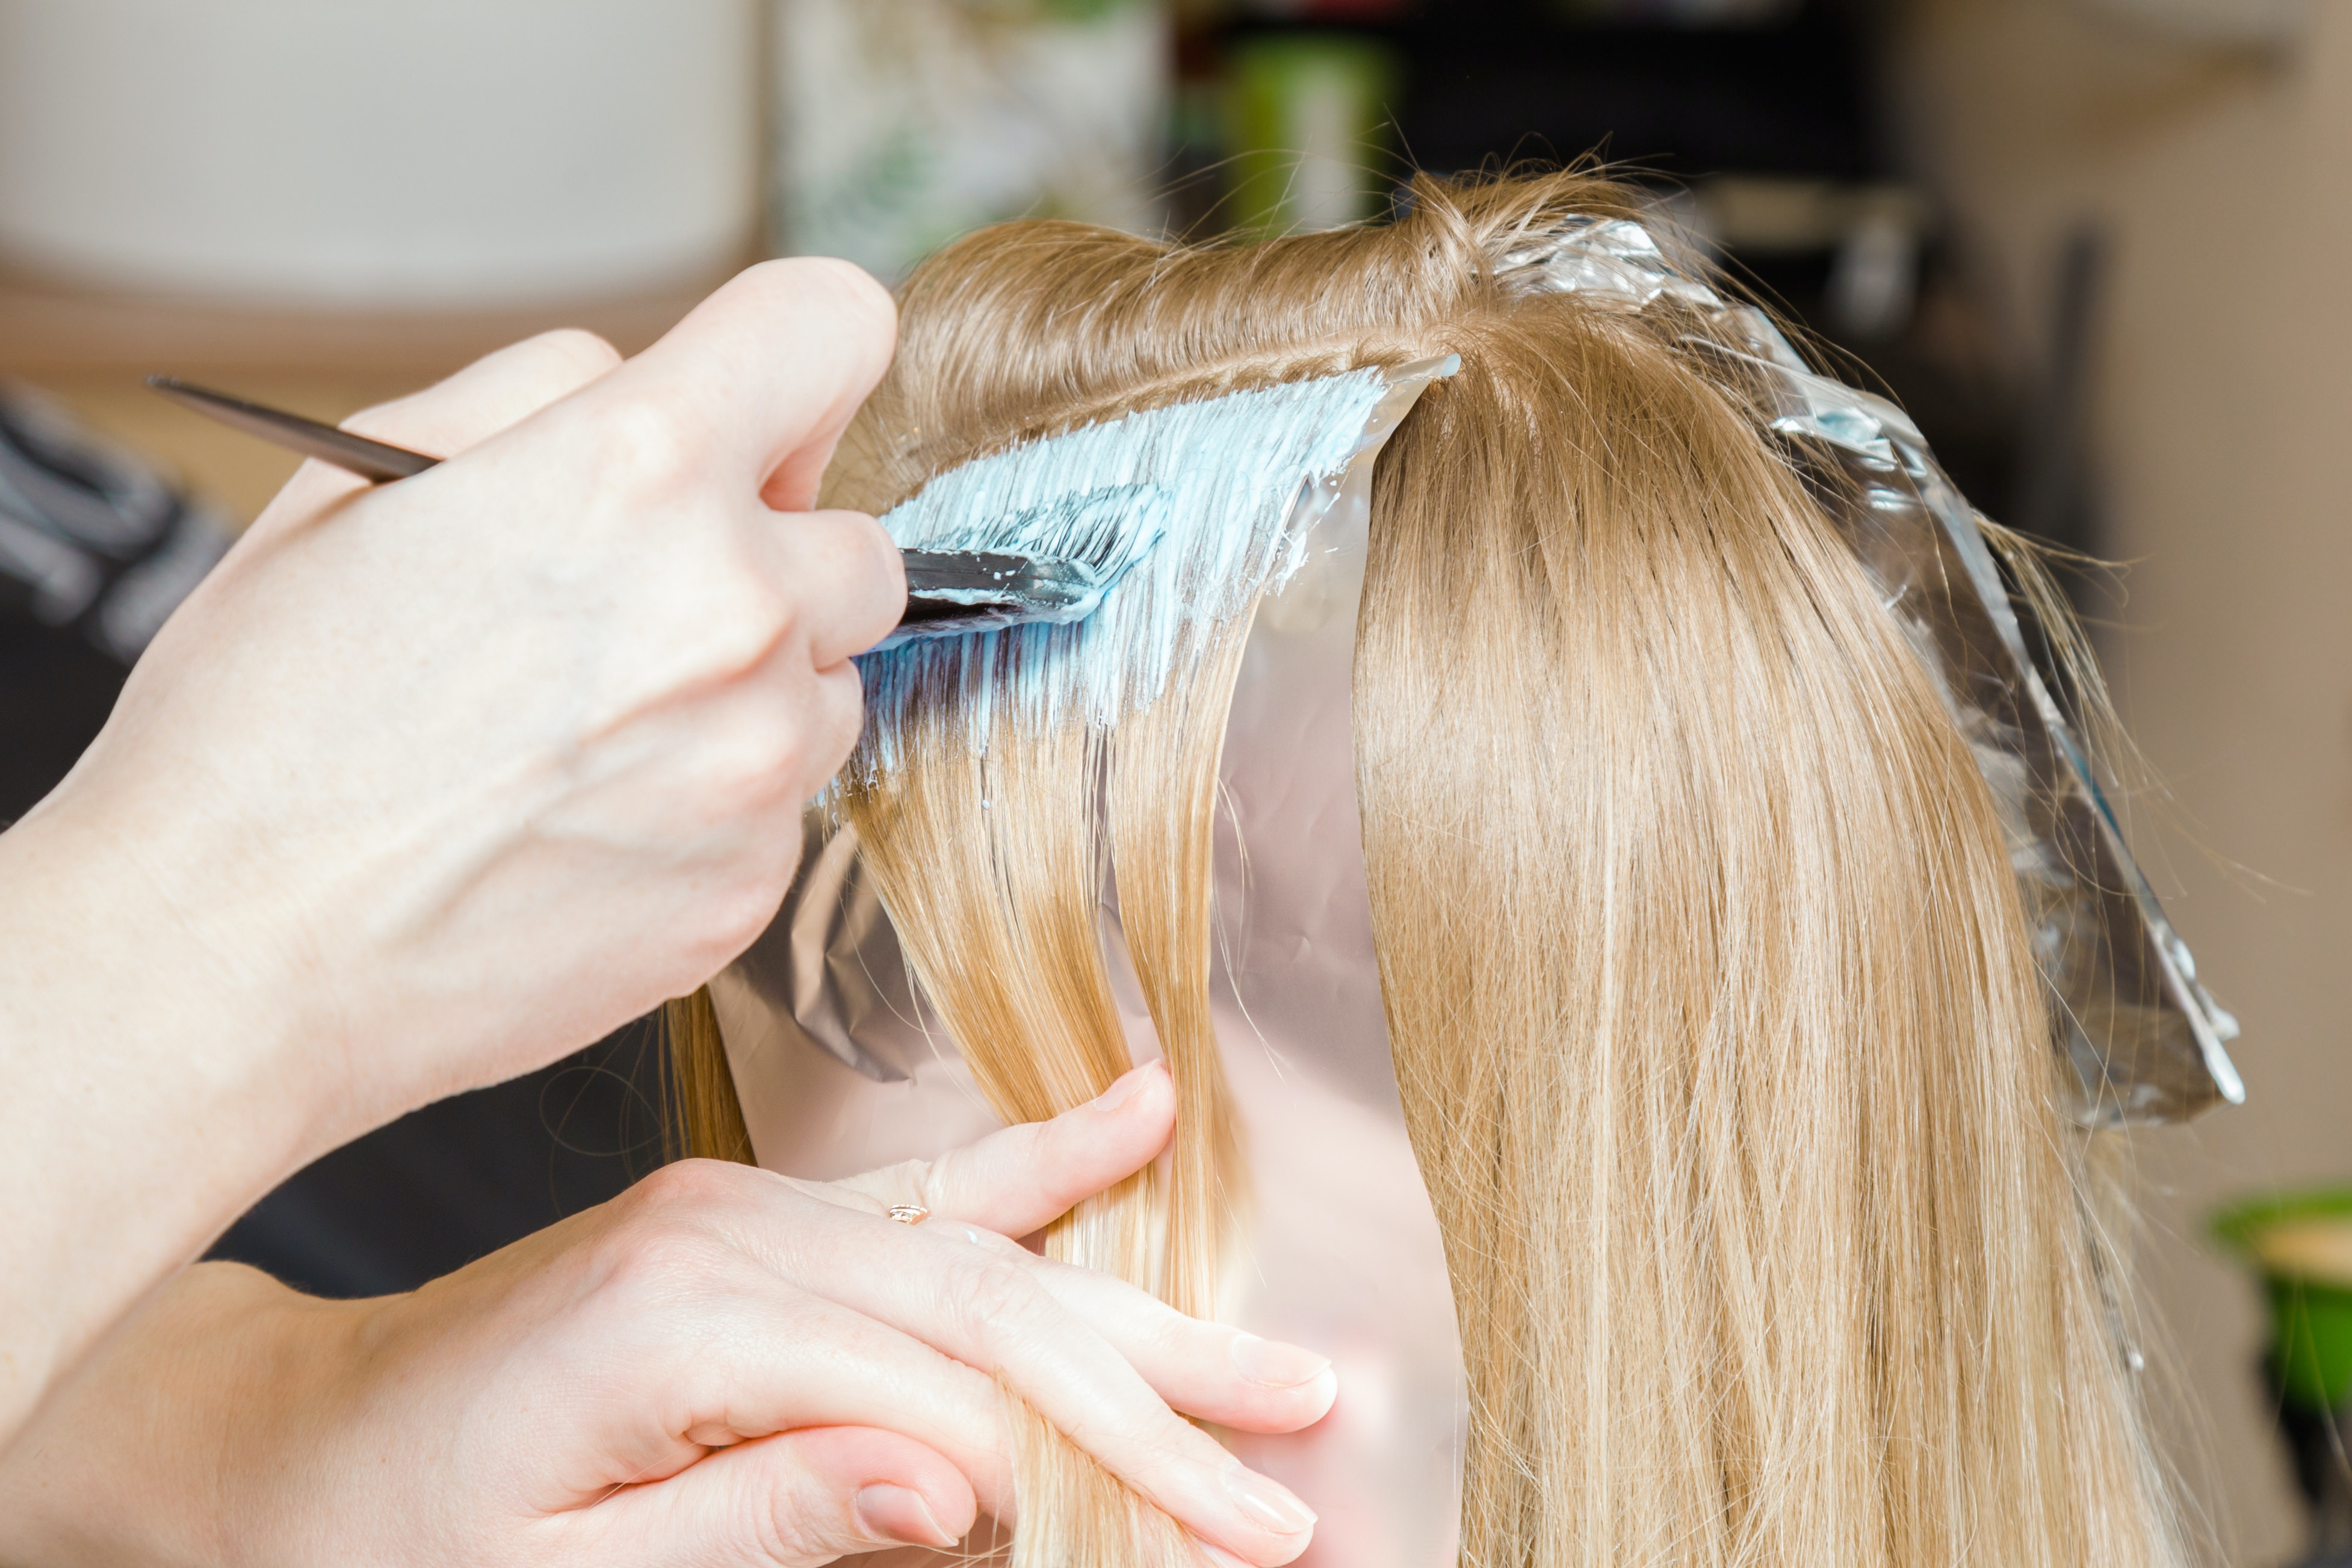 What Hair Dye Actually Does To Your Hair, According To Science